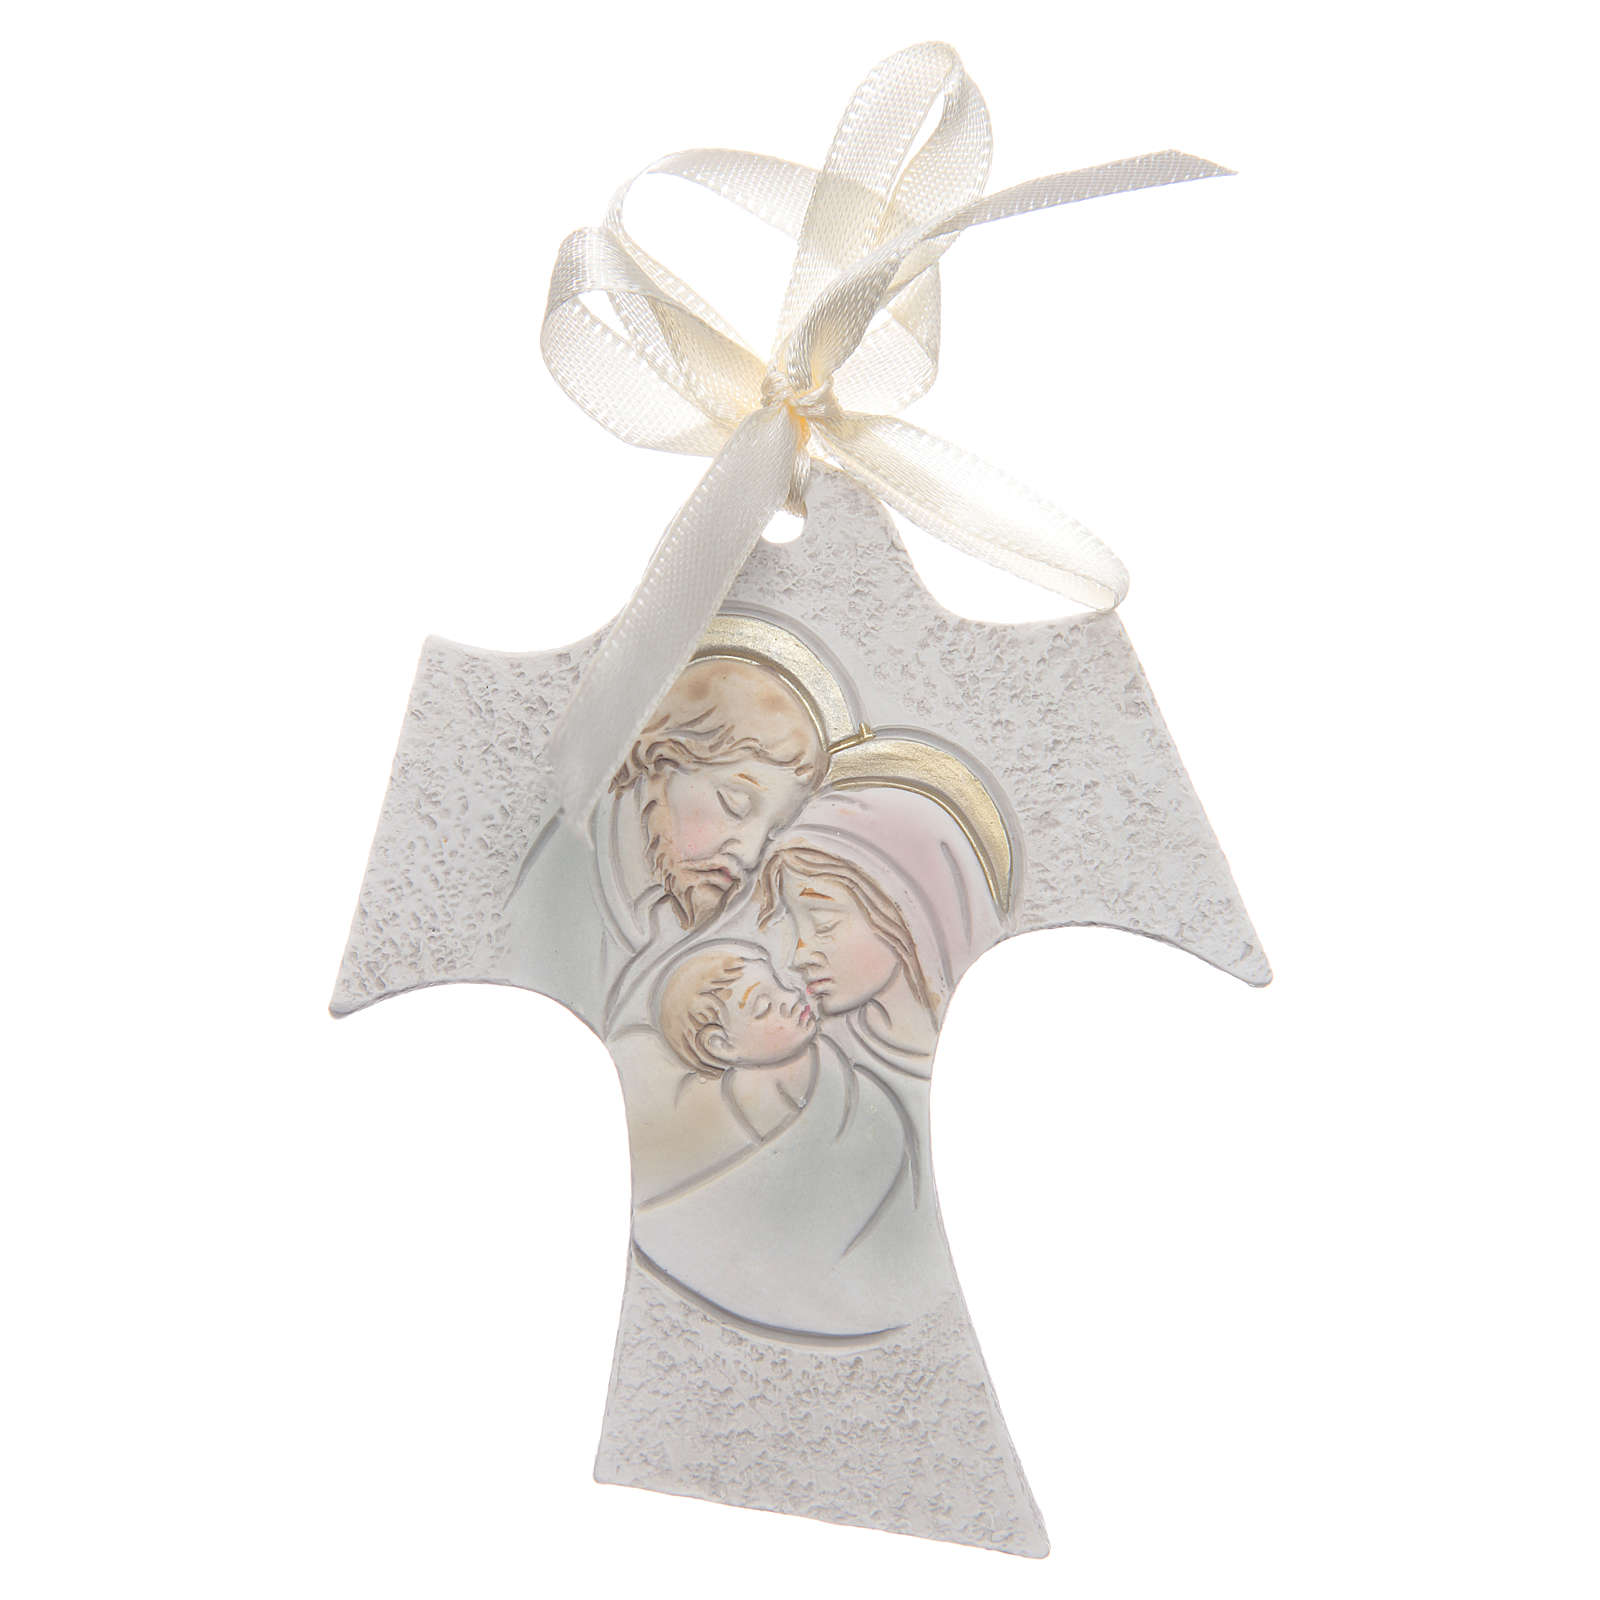 Bombonniere for wedding Tau Holy Family 7x8 cm 3